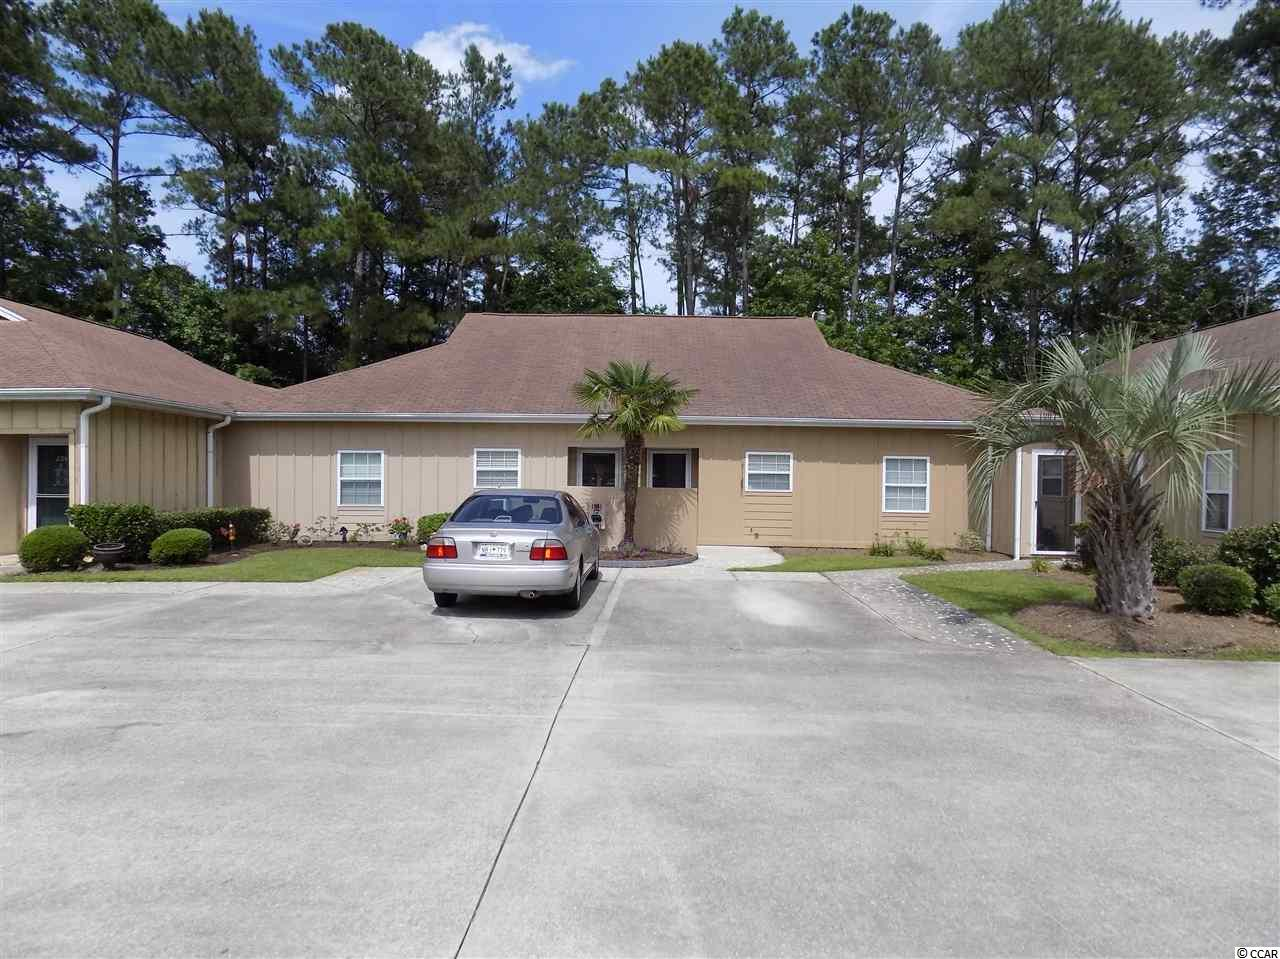 Pawleys Island Condo For Sale By Owner